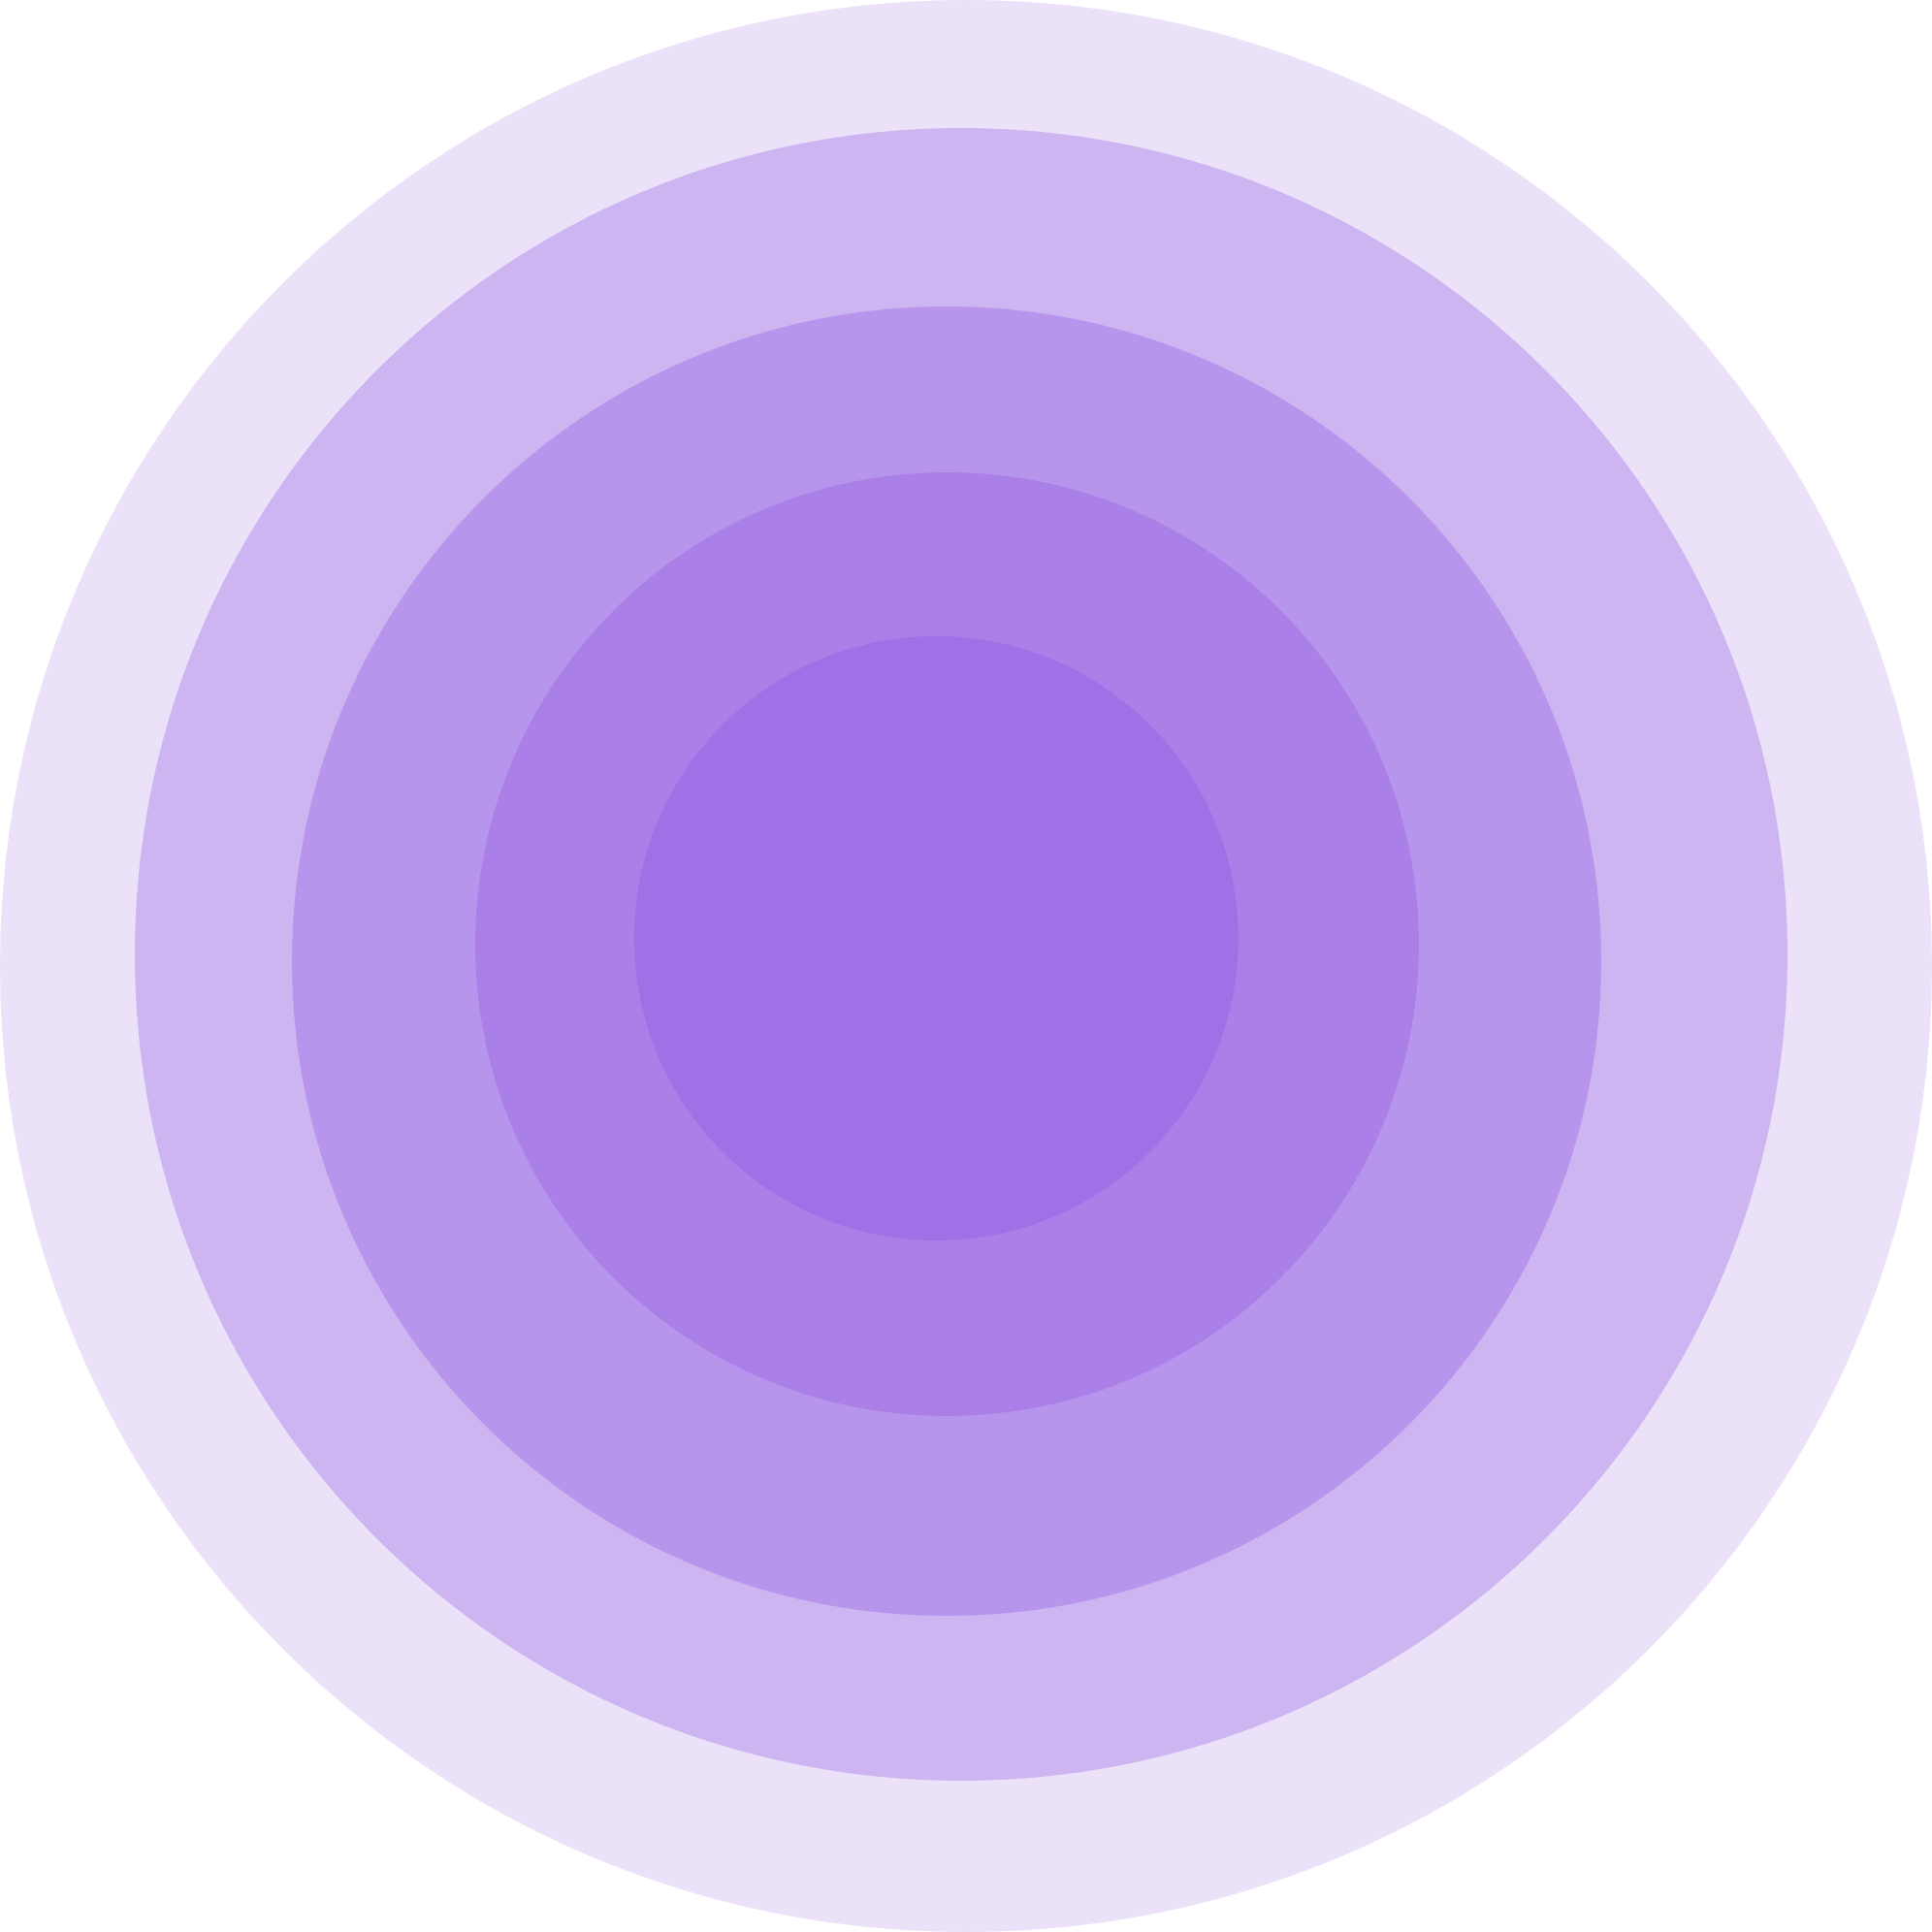 Purple circles